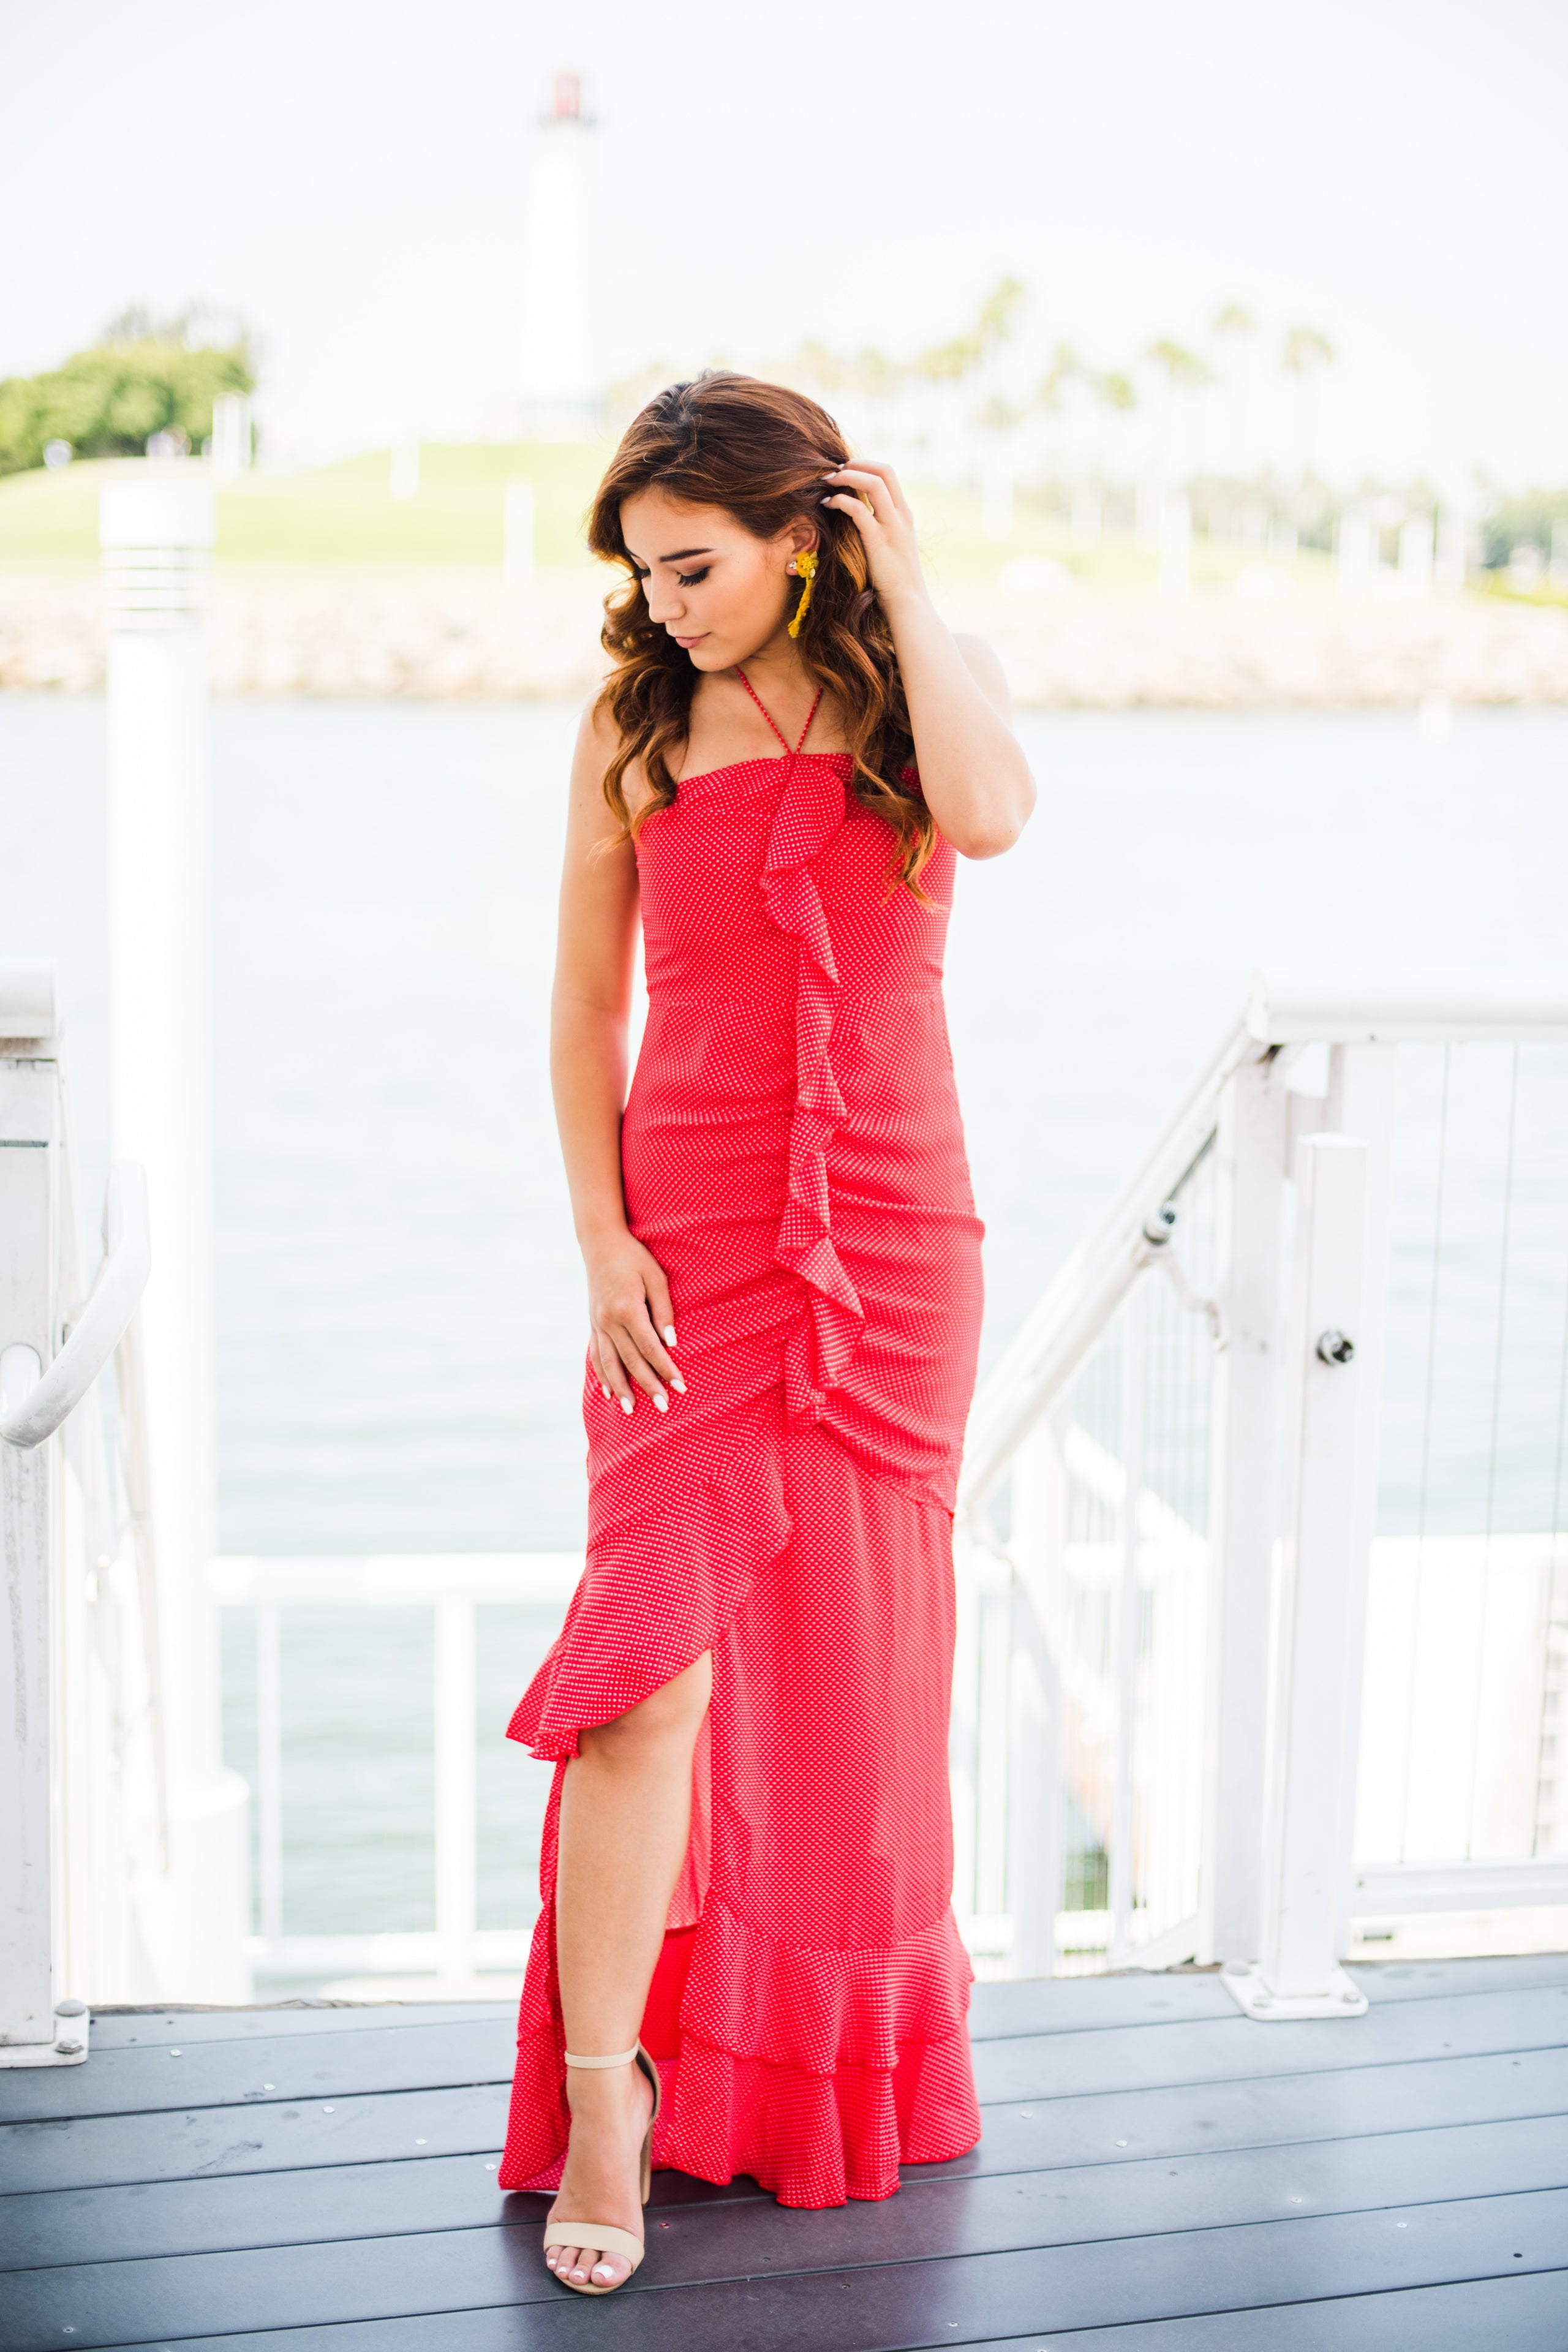 Havanna Red Polka Dot Maxi - Blush Elegance